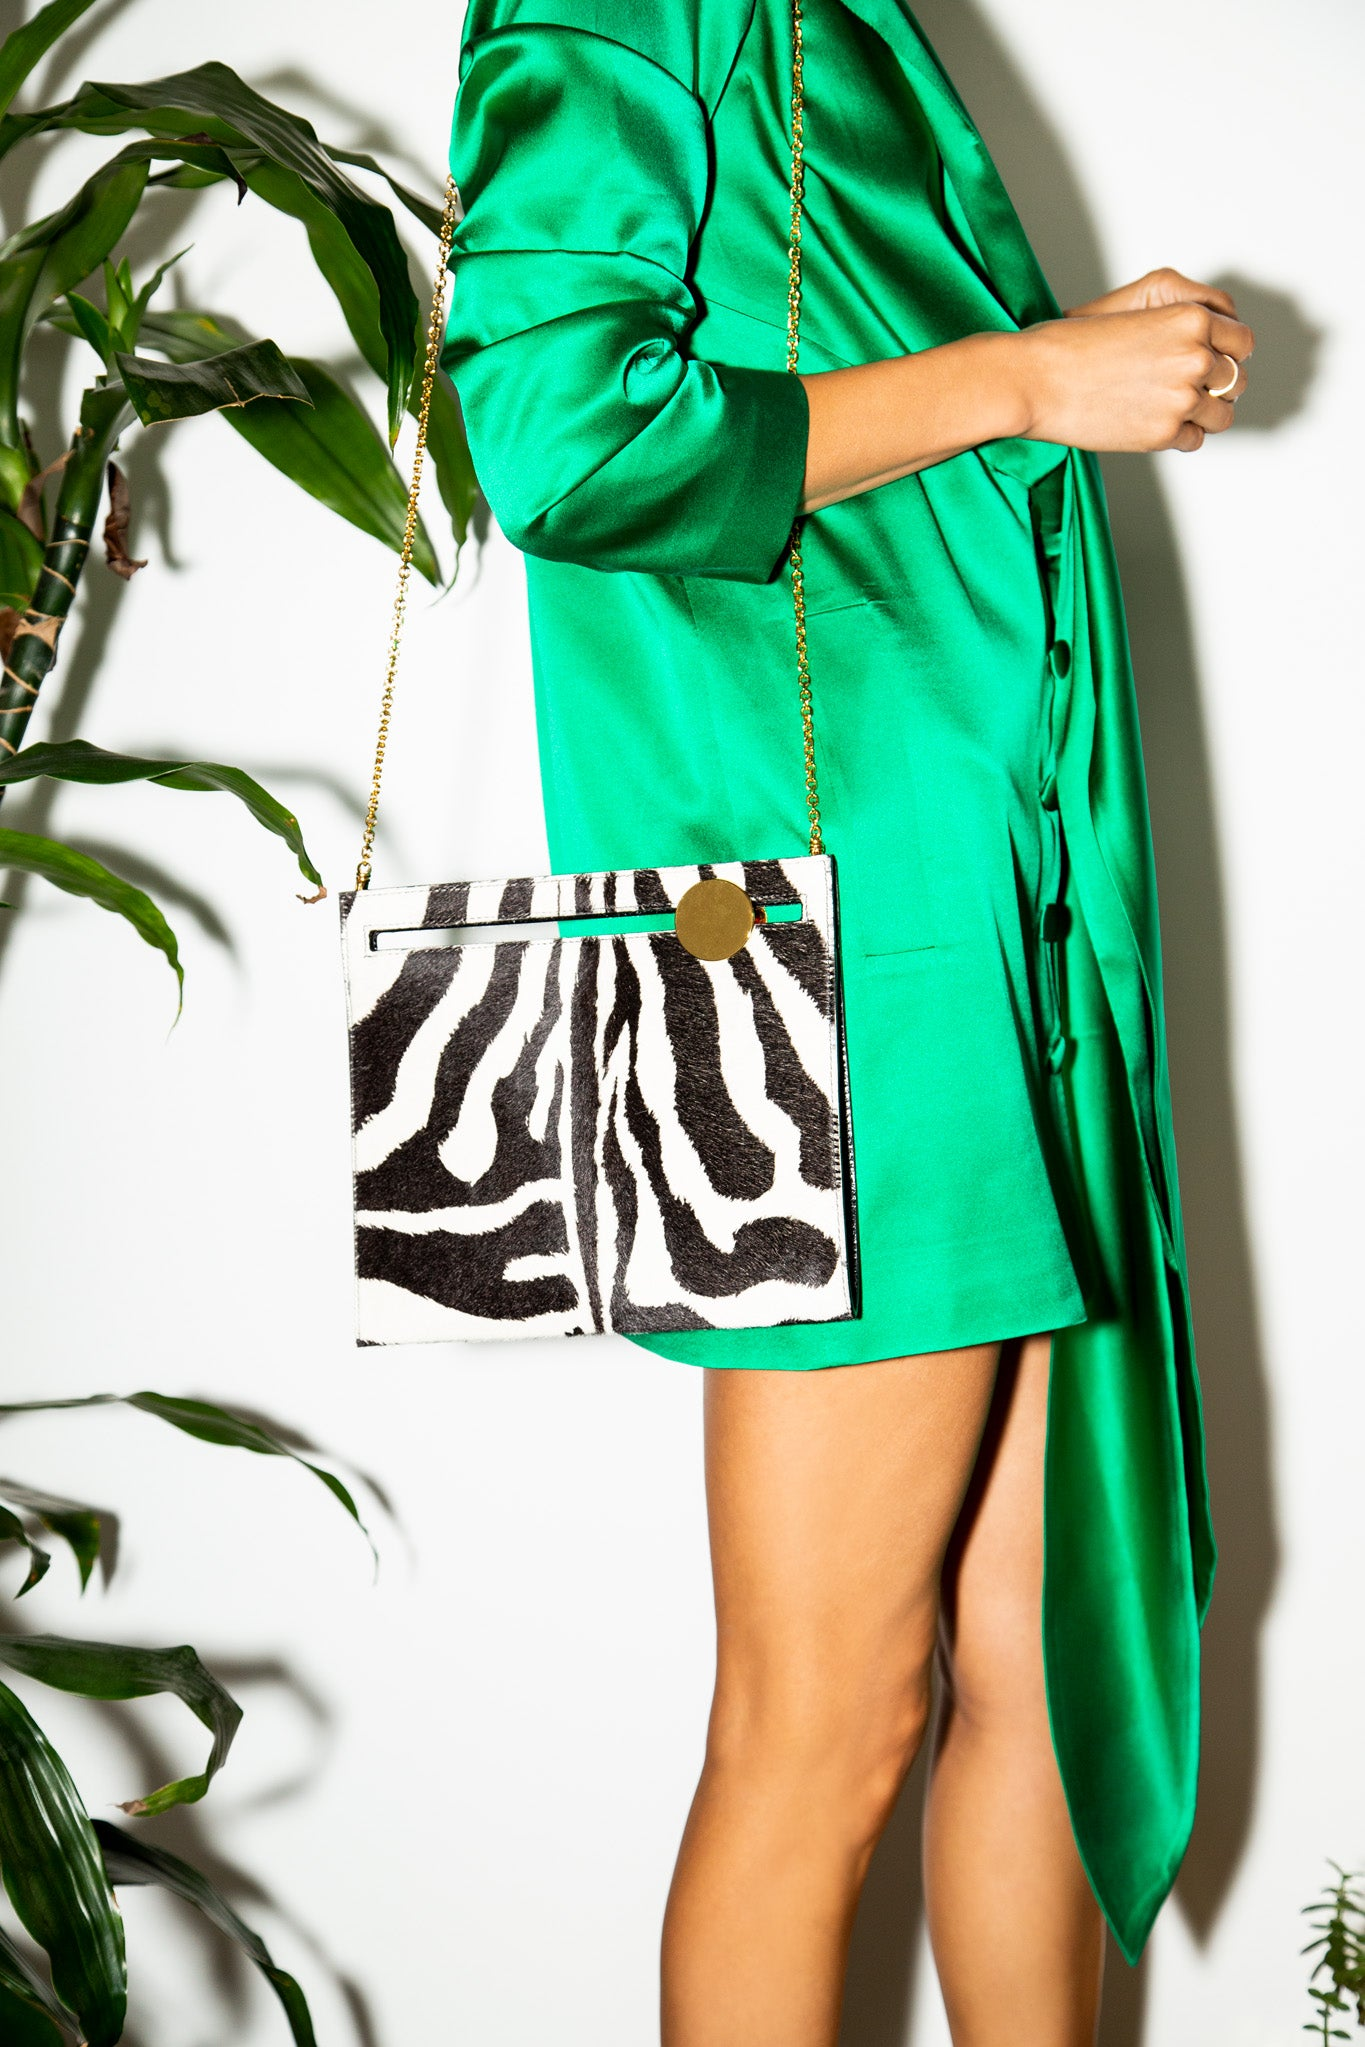 Max Clutch in Zebra Printed Calf Hair